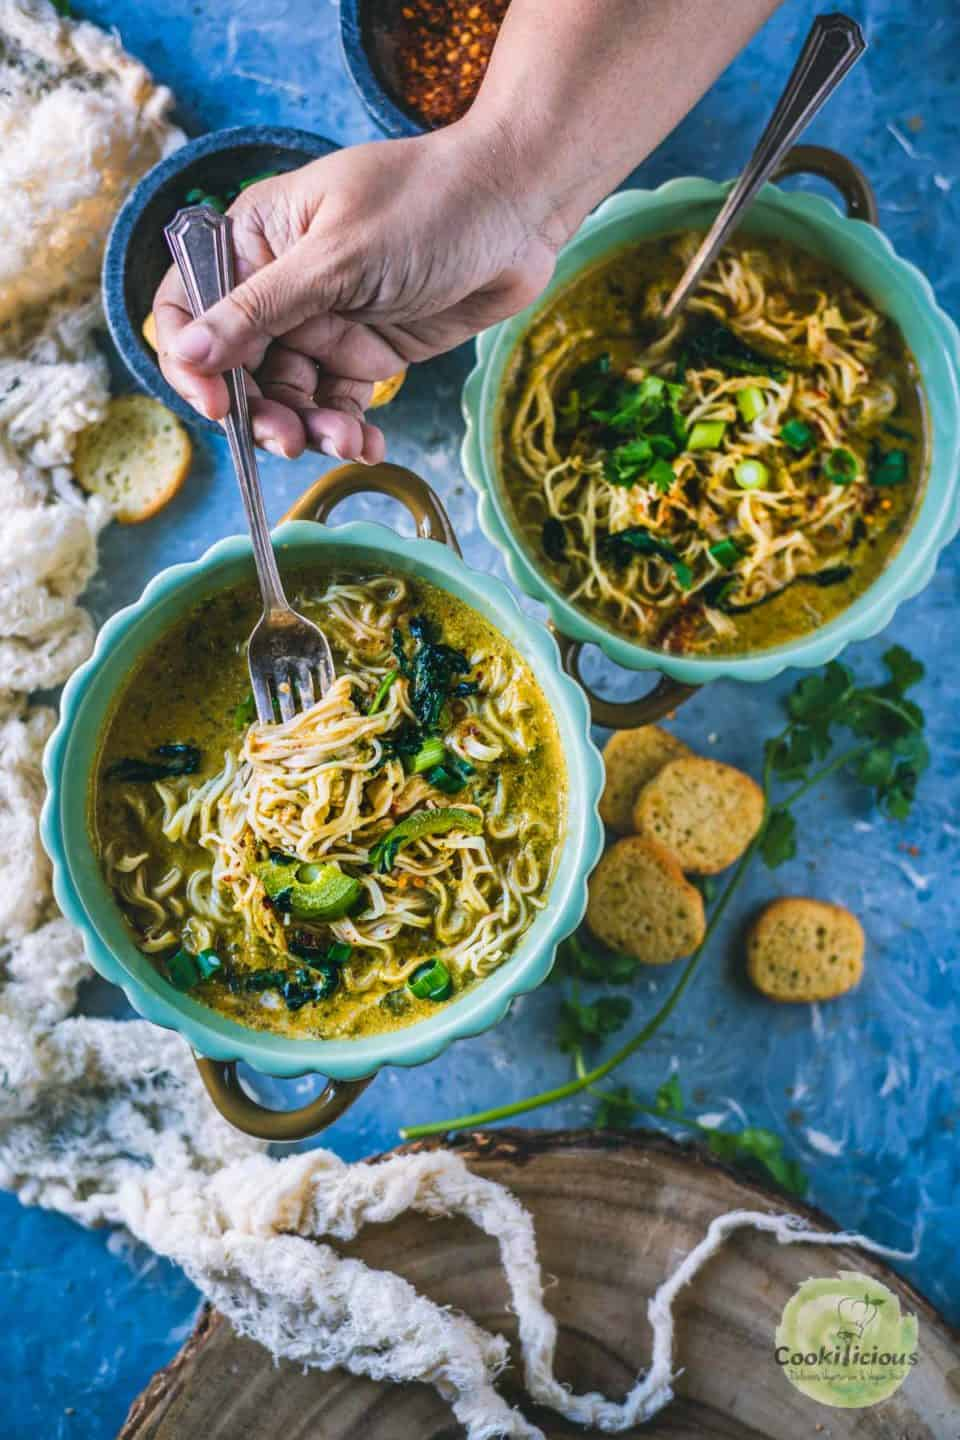 a hand digging into a bowl of Vegan Thai Curry Noodles Soup with a spoon